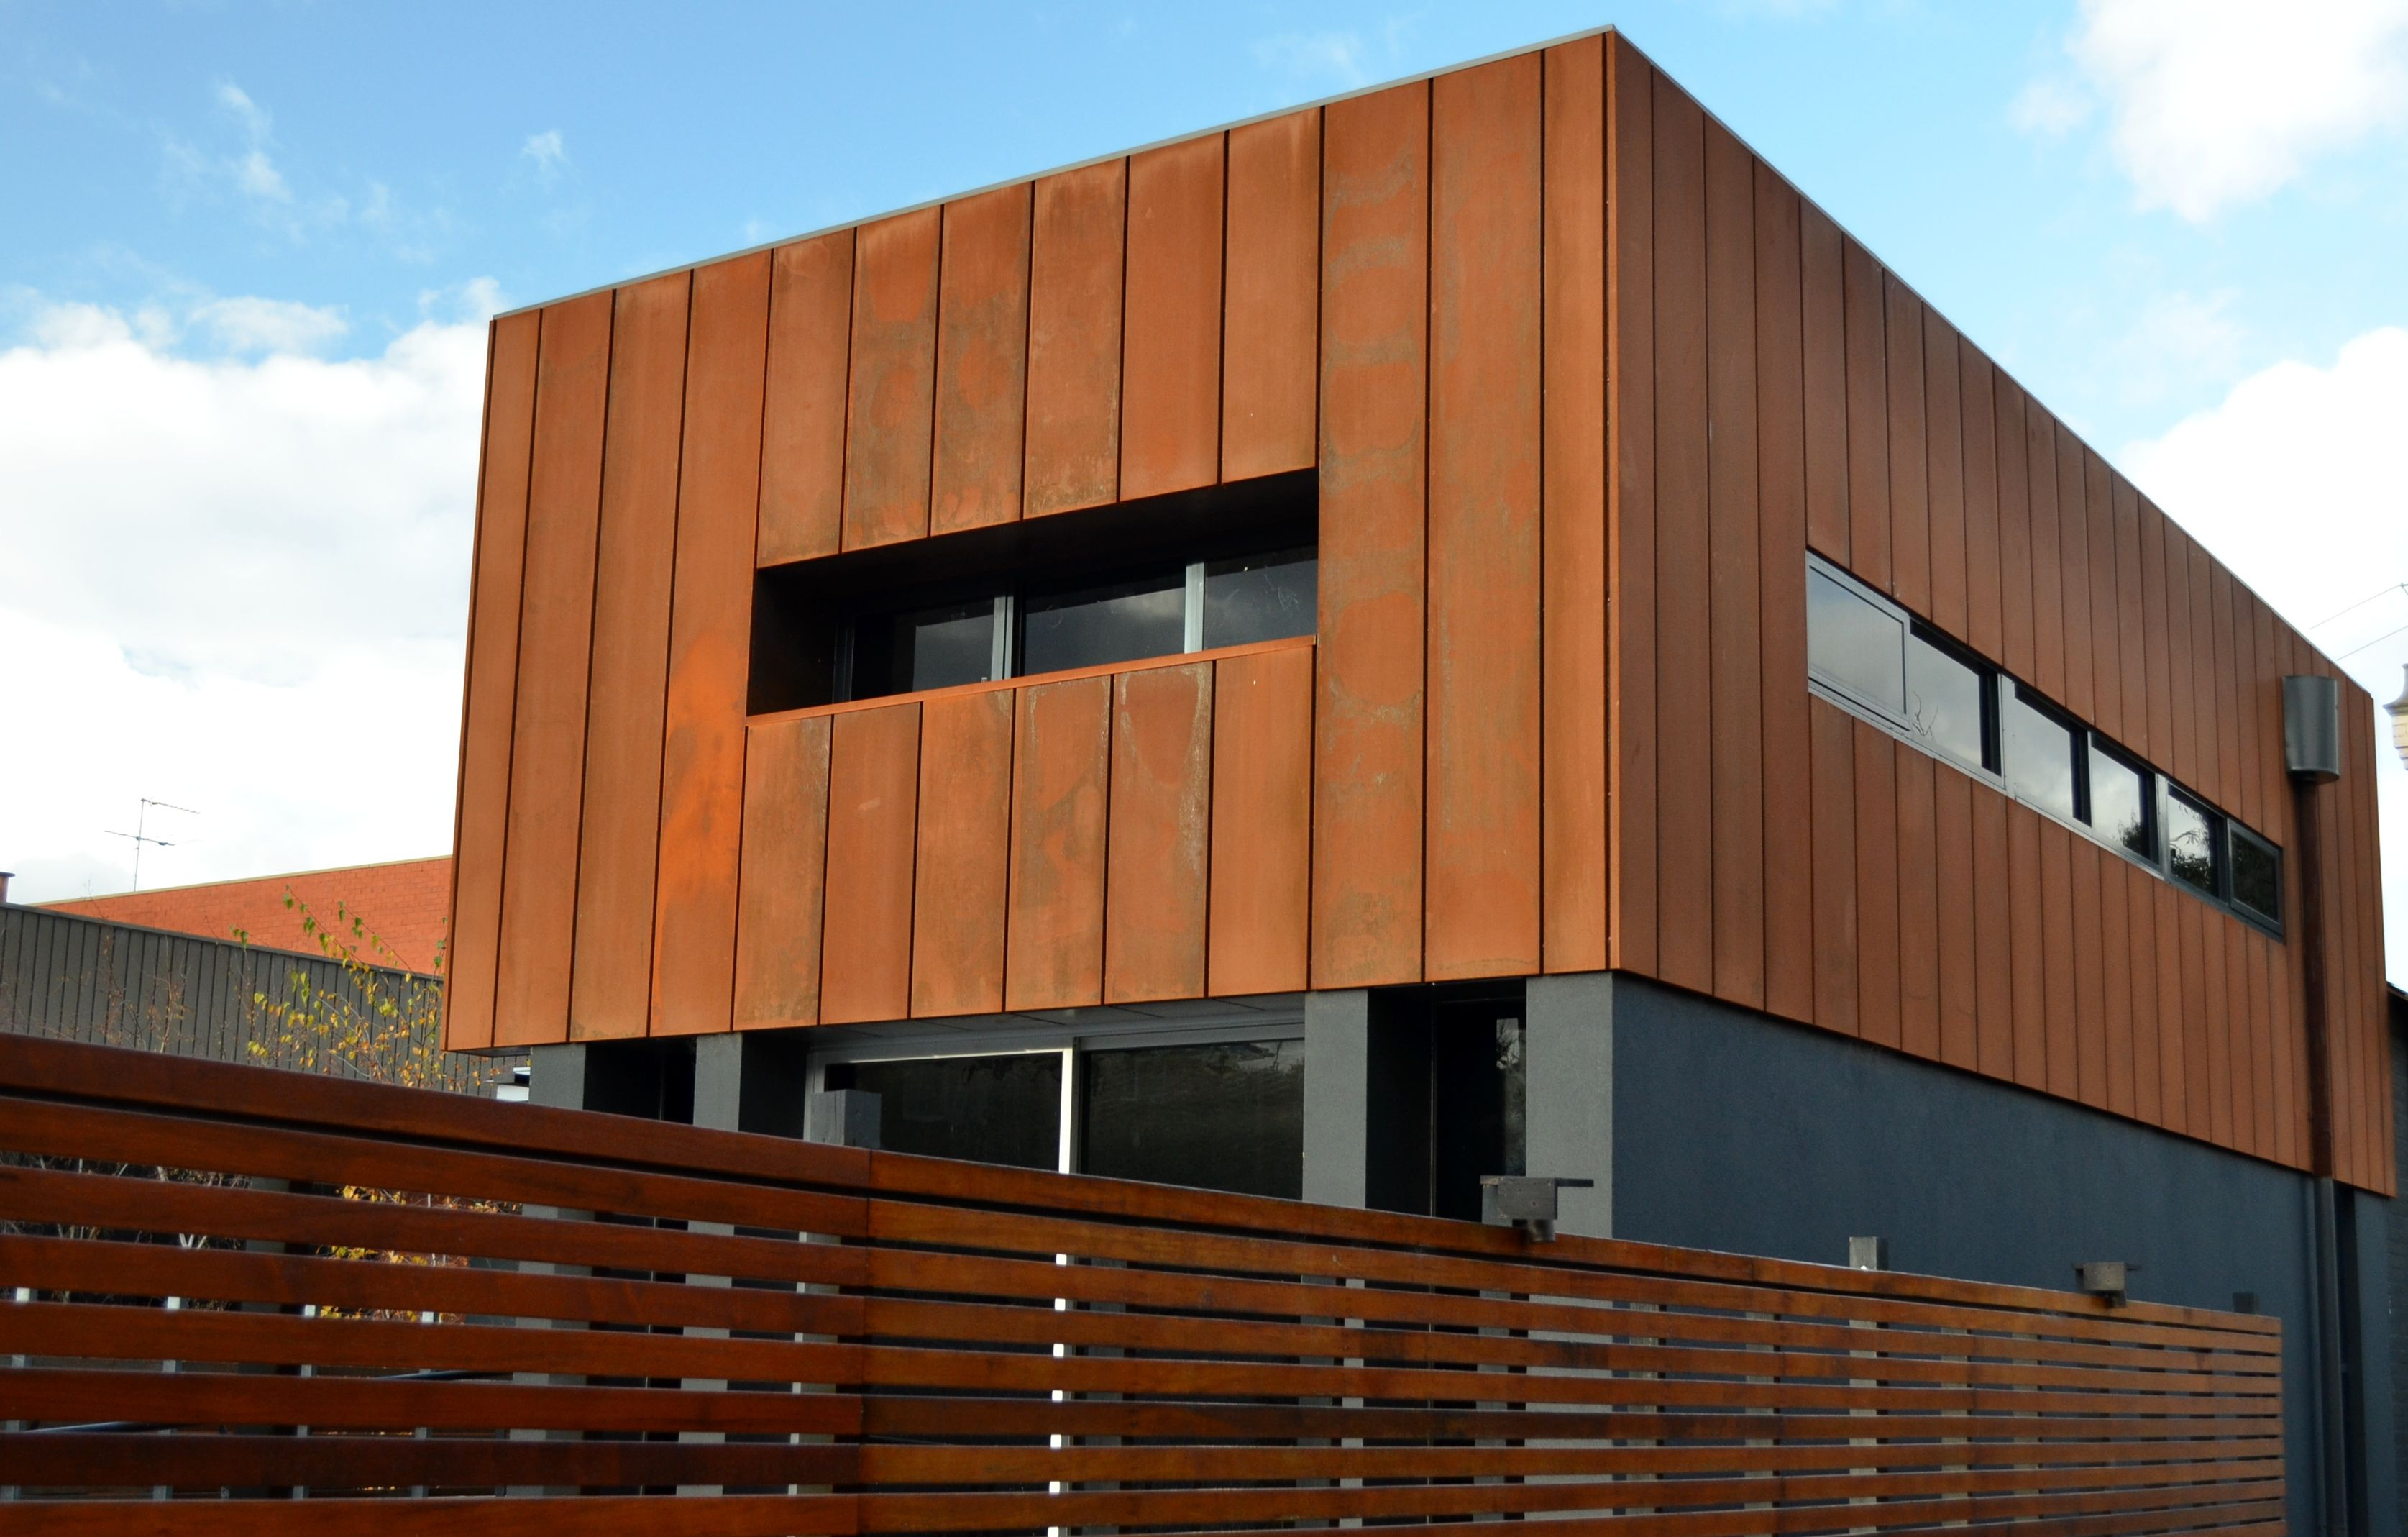 cassette panel corten design cladding architecture. Black Bedroom Furniture Sets. Home Design Ideas